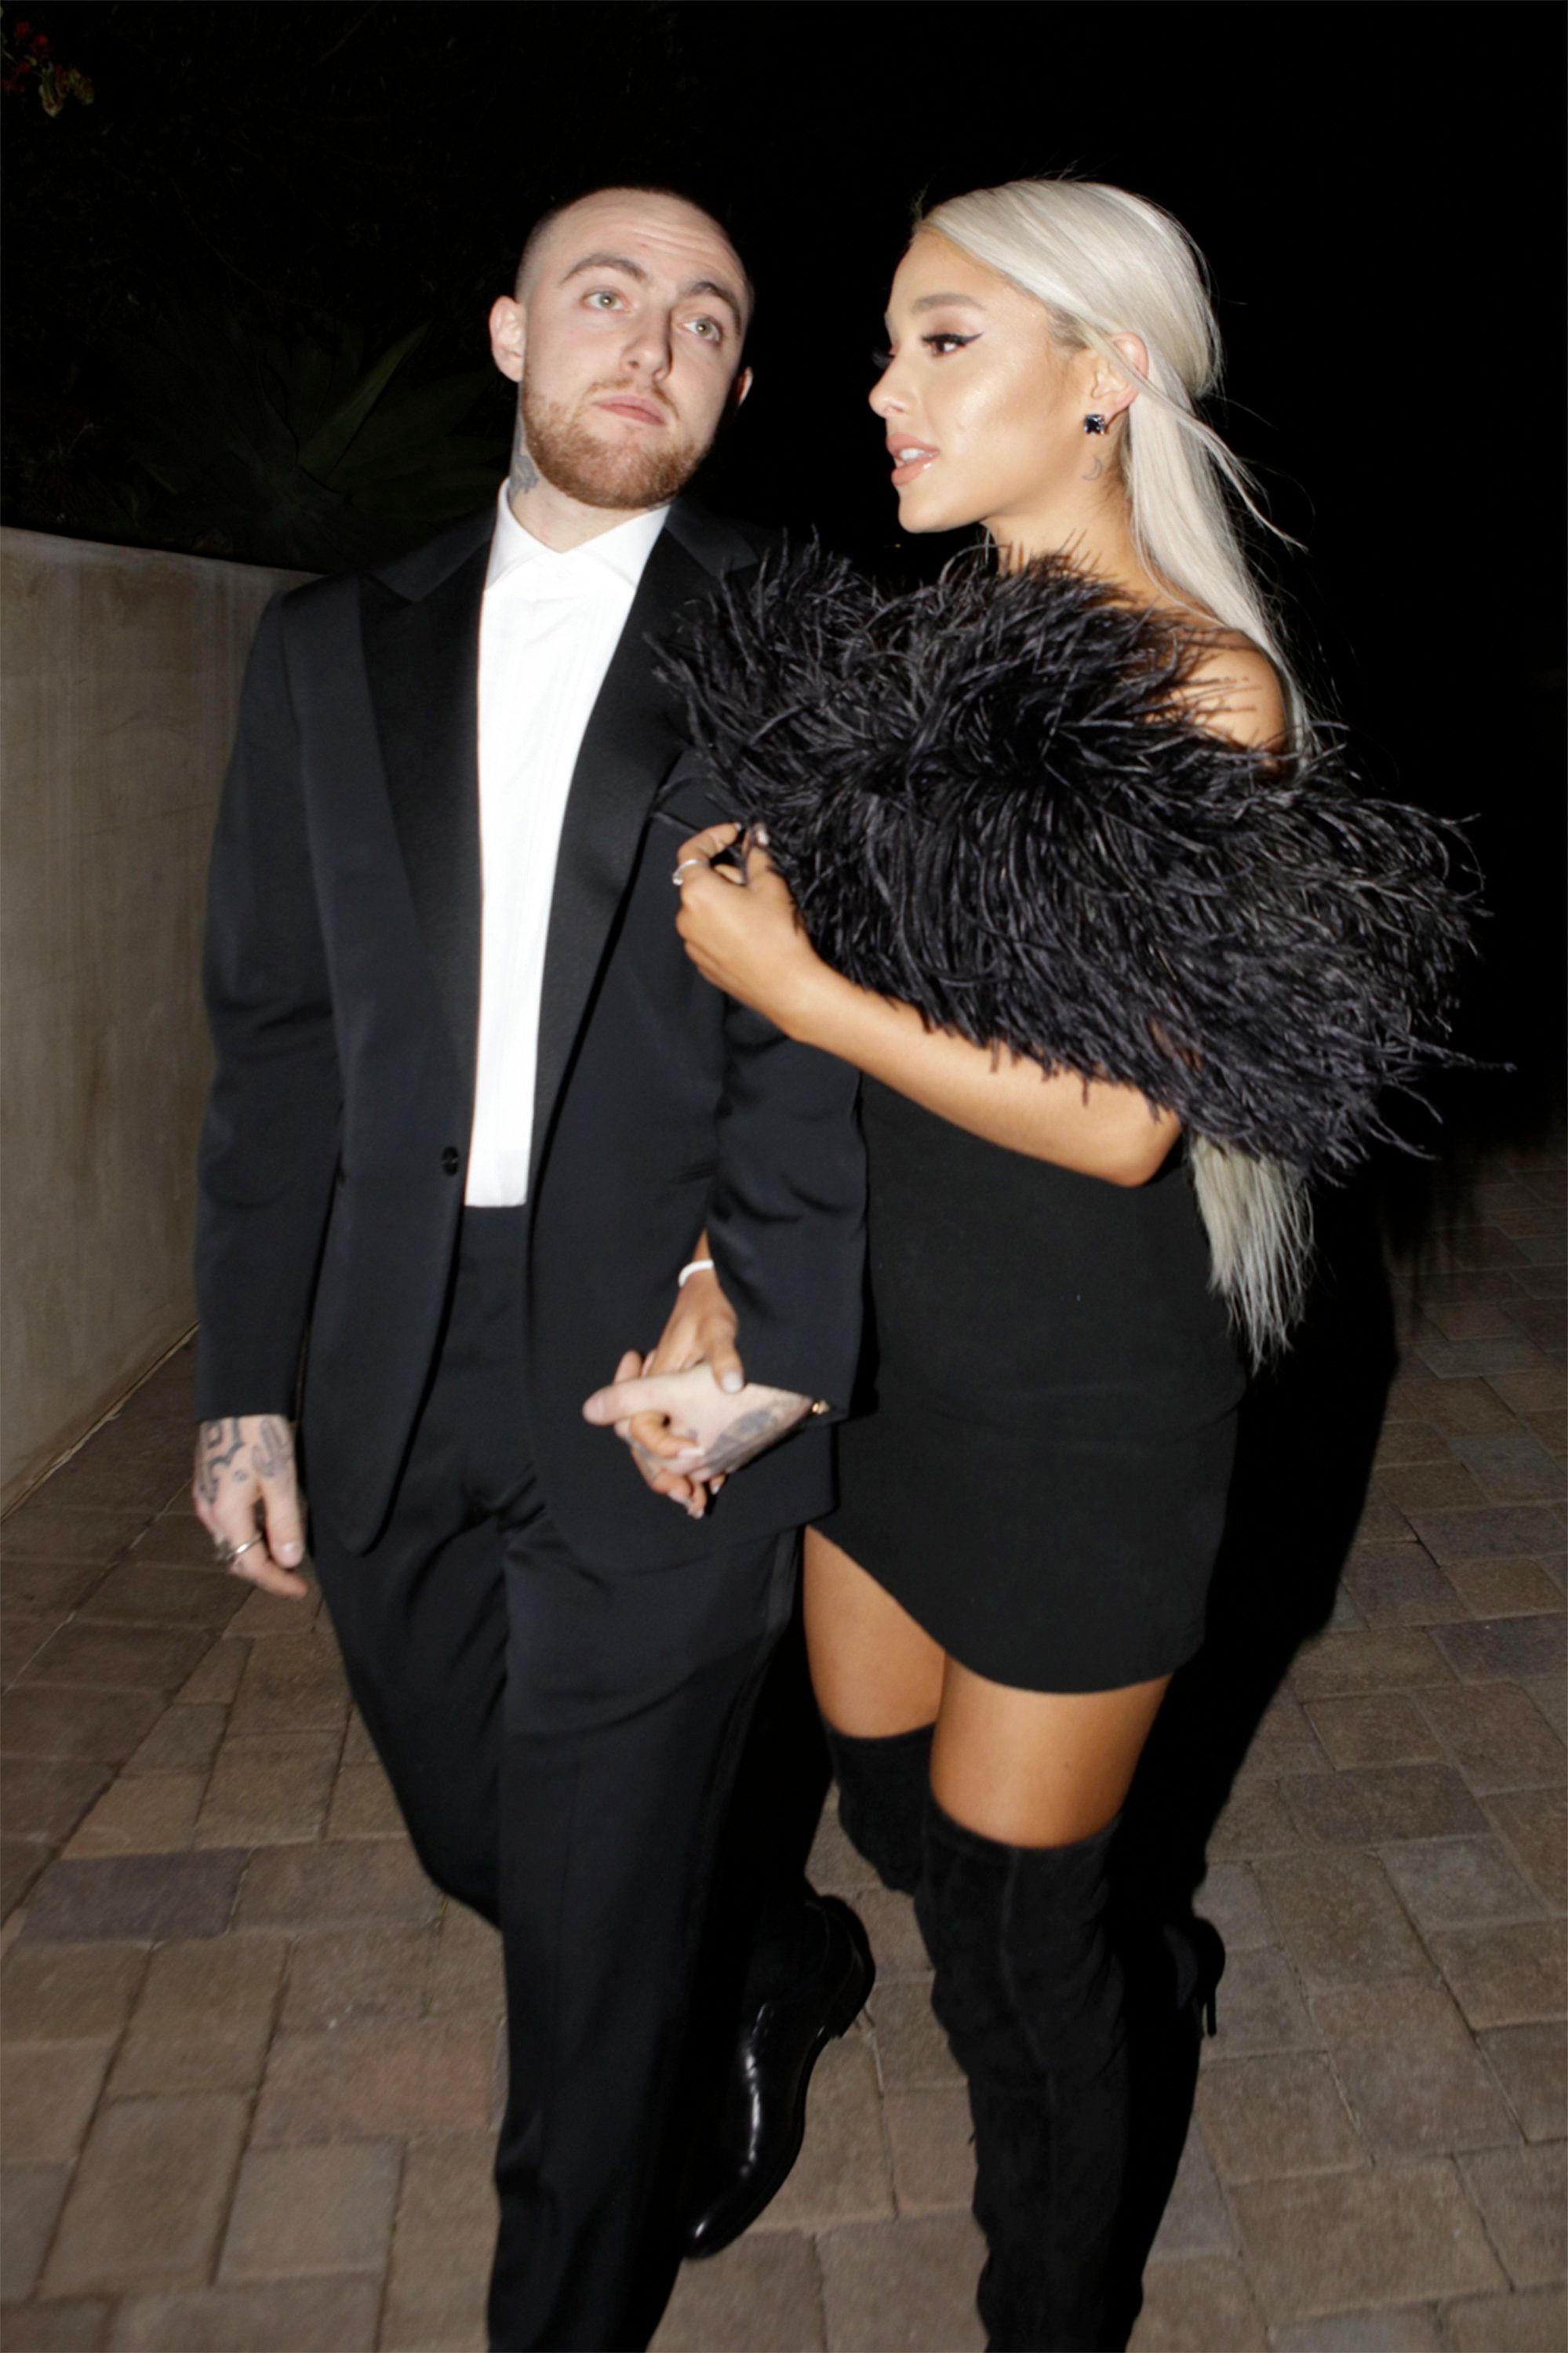 LOS ANGELES, CA - MARCH 04:  Rapper Mac Miller and singer Ariana Grande are seen attending an Oscar party on March 4, 2018 in Los Angeles, California.  (Photo by GC Images)